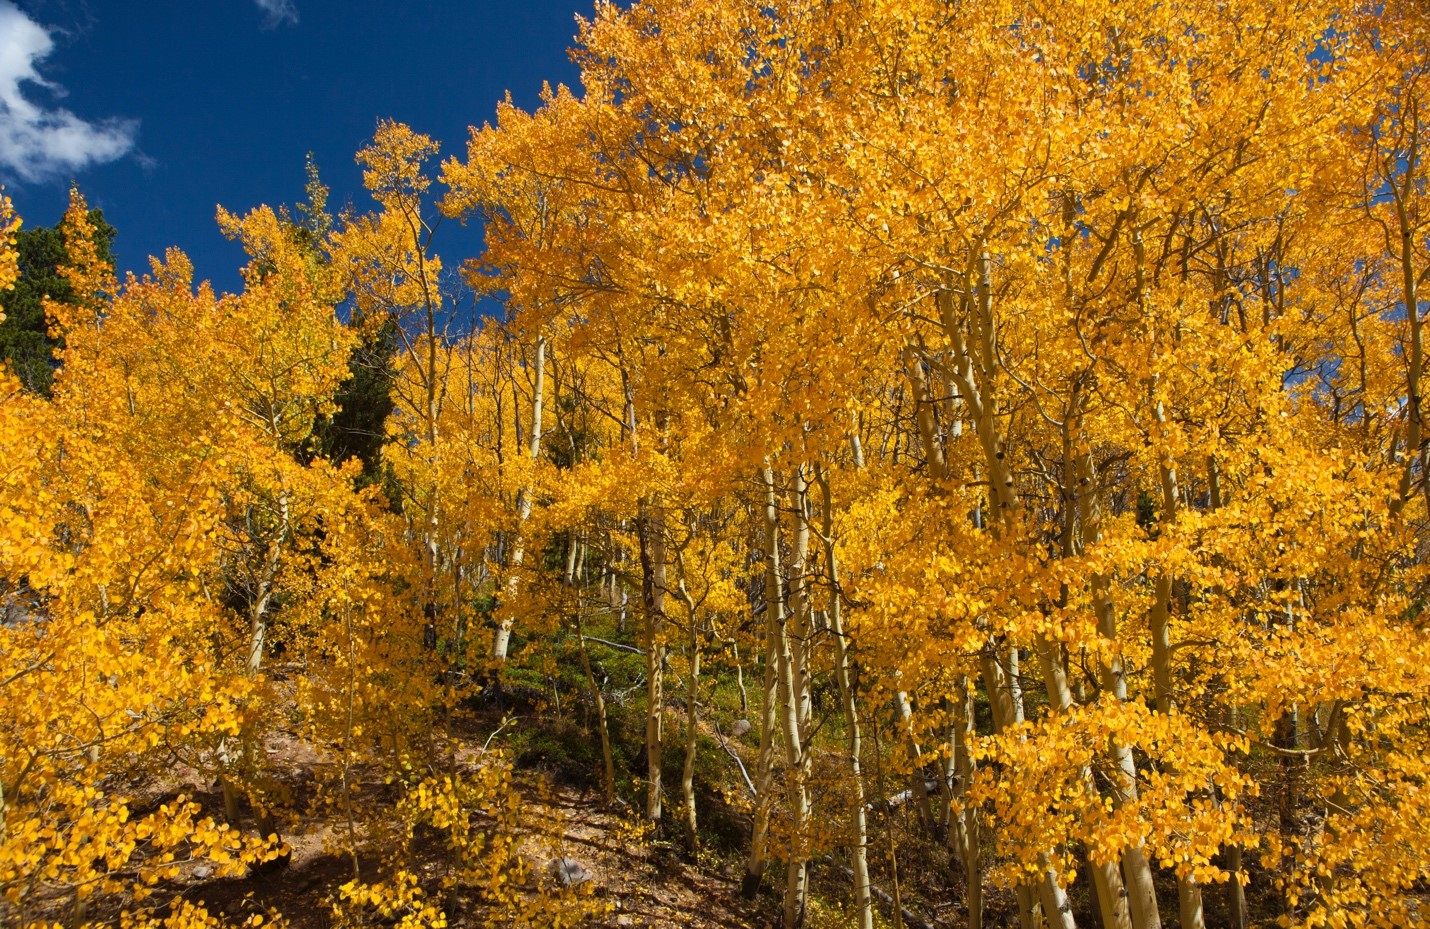 brilliant yellows of aspen leaves in fall in colorado